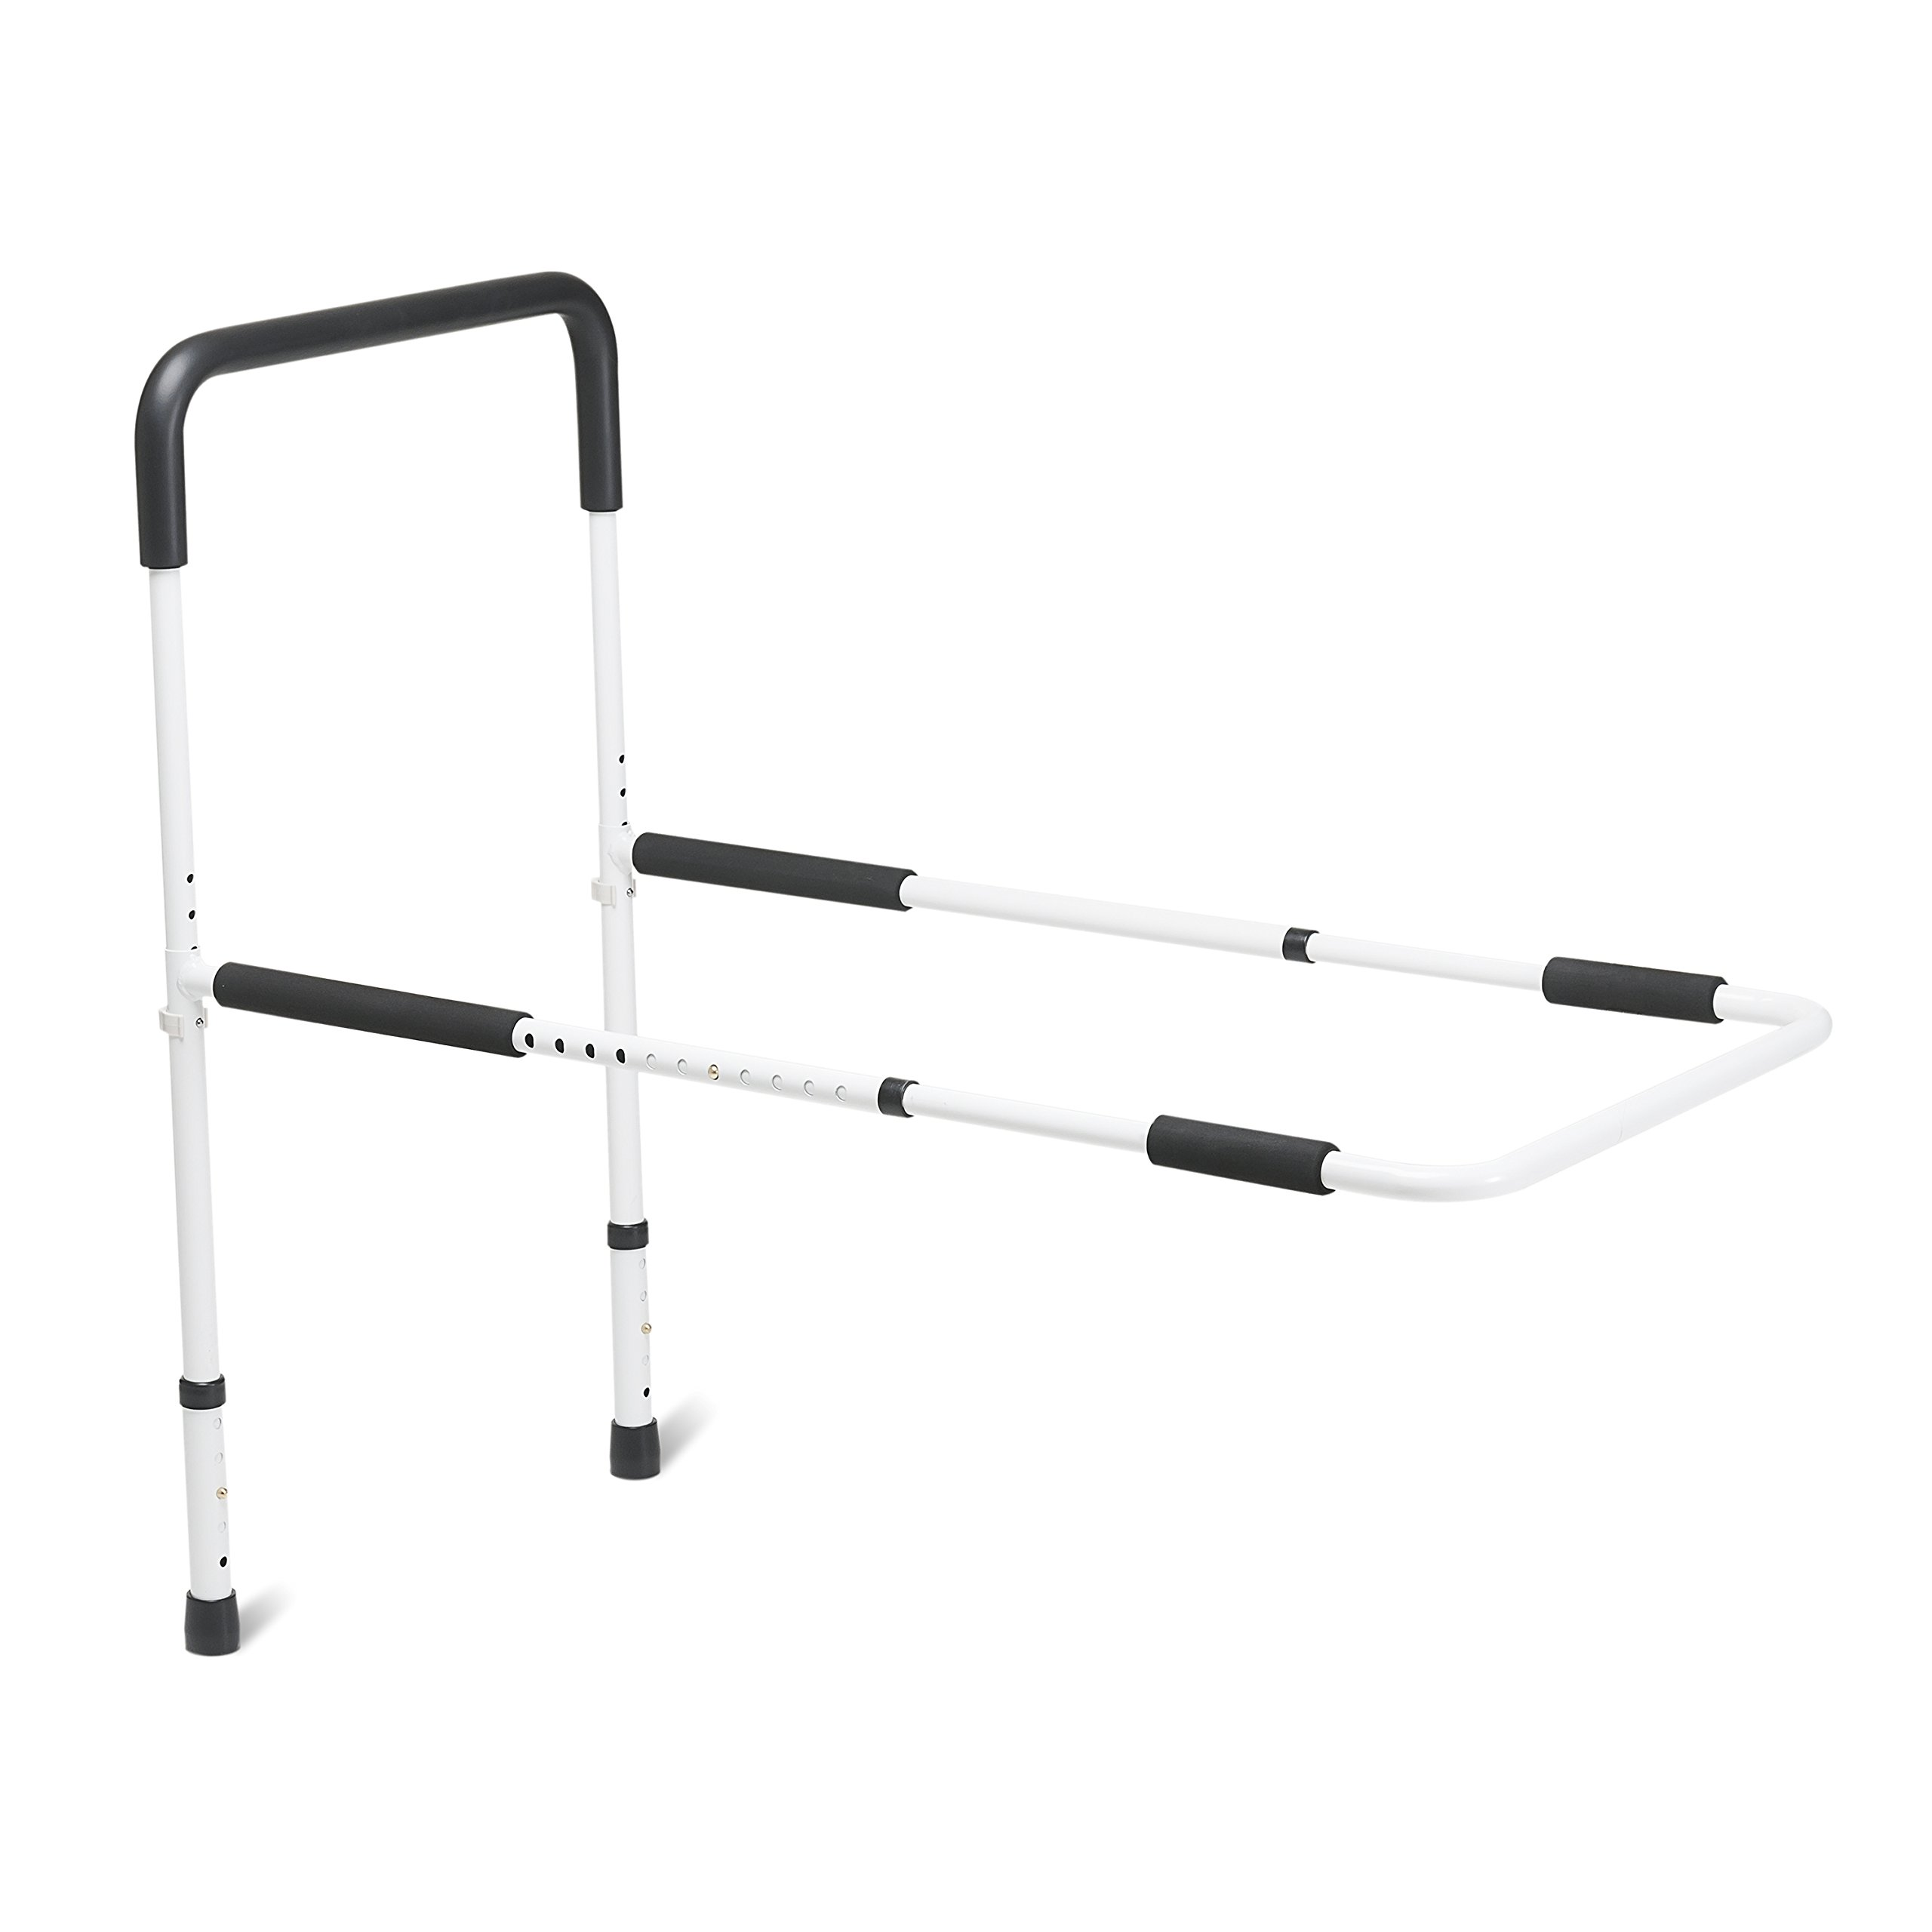 DMI Home Bed Assist Rail with Adjustable Height, No Tool Assembly